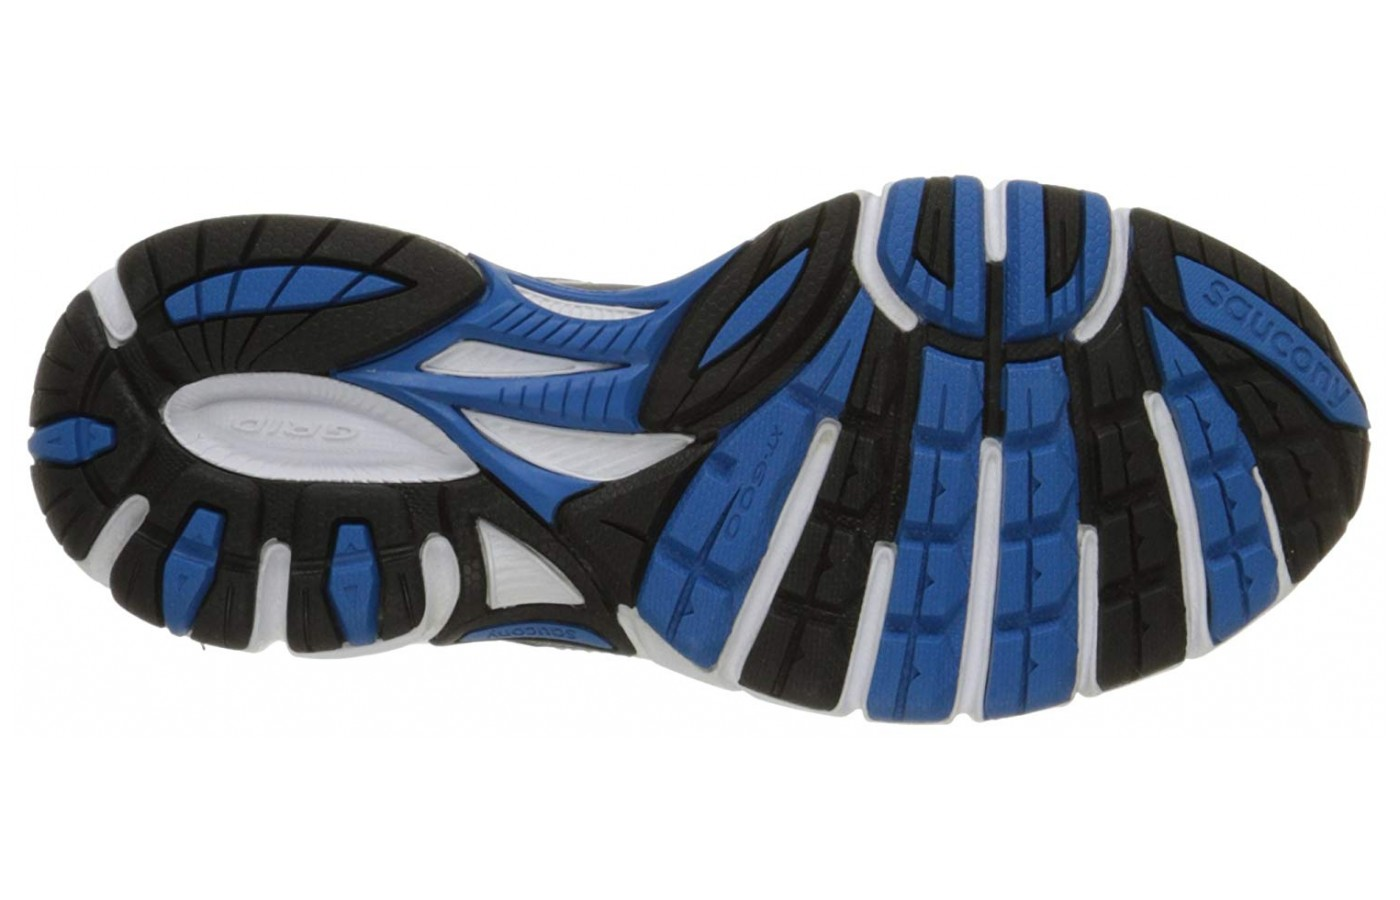 The outsole meant to handle hilly terrain also features aesthetic cascading colors that are very appealing.